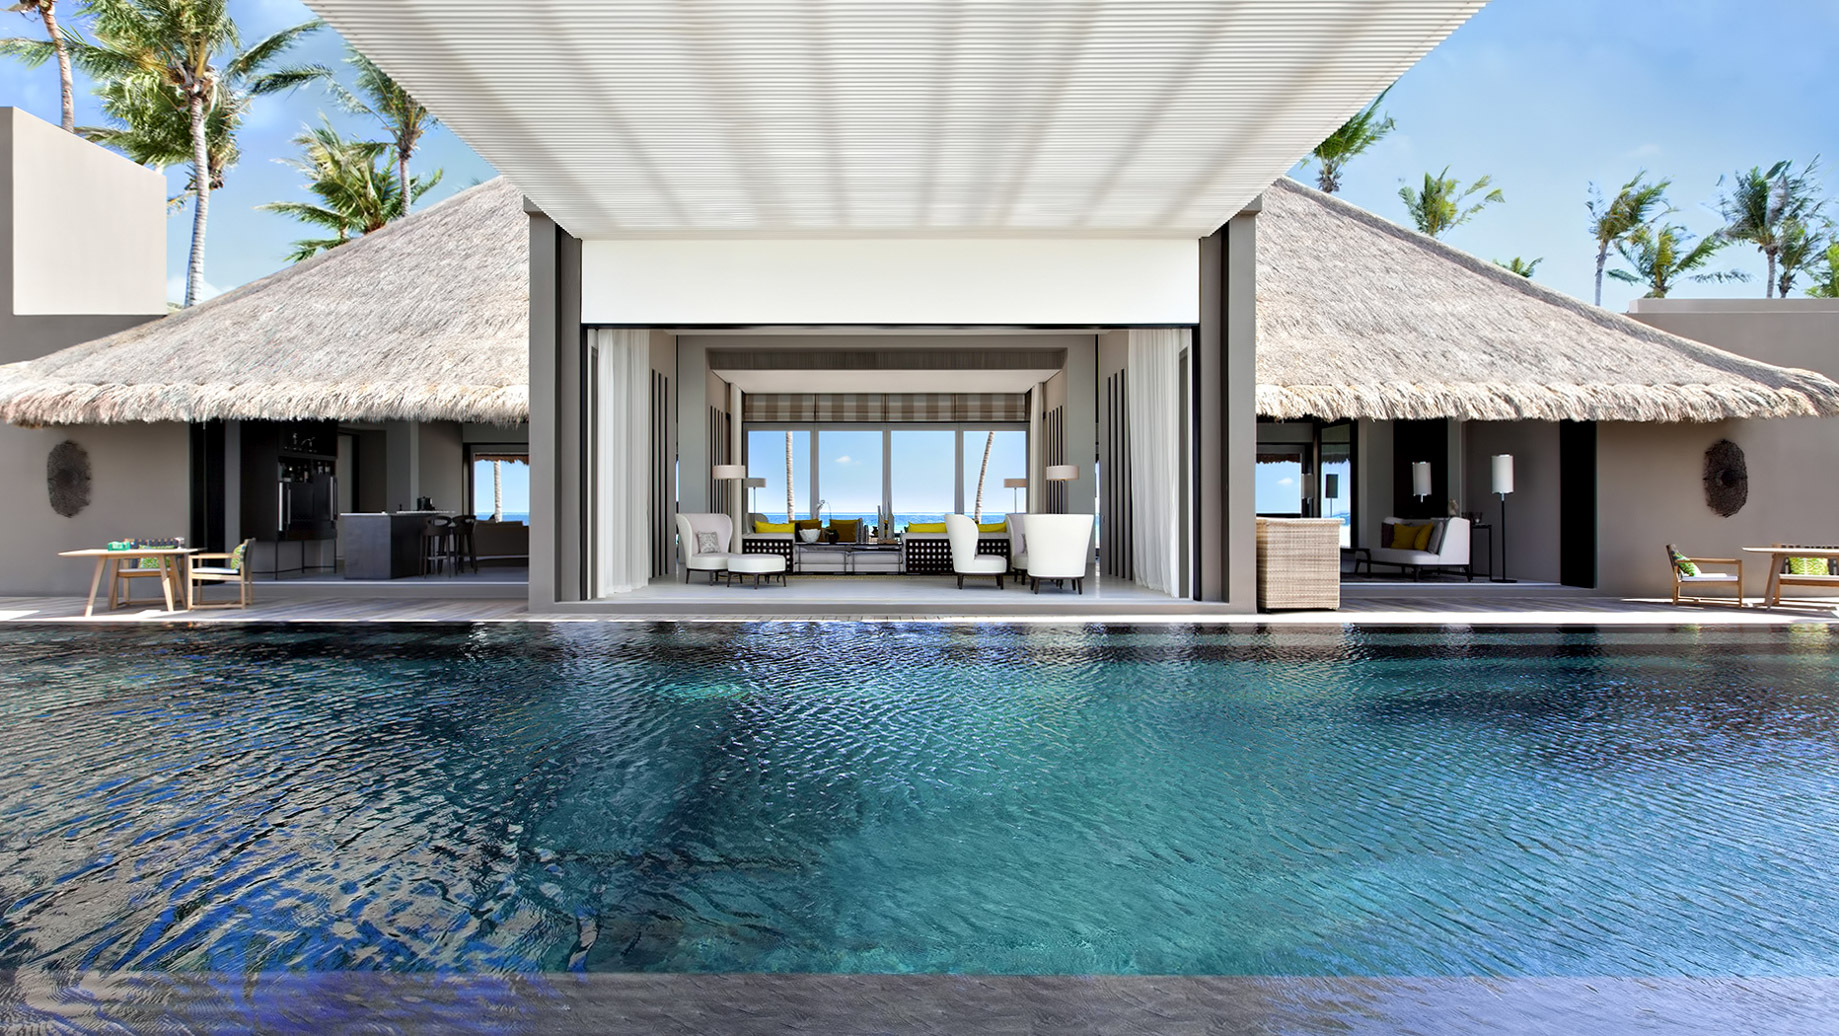 Cheval Blanc Randheli Luxury Resort - Noonu Atoll, Maldives - Exclusive Private Island Villa Pool